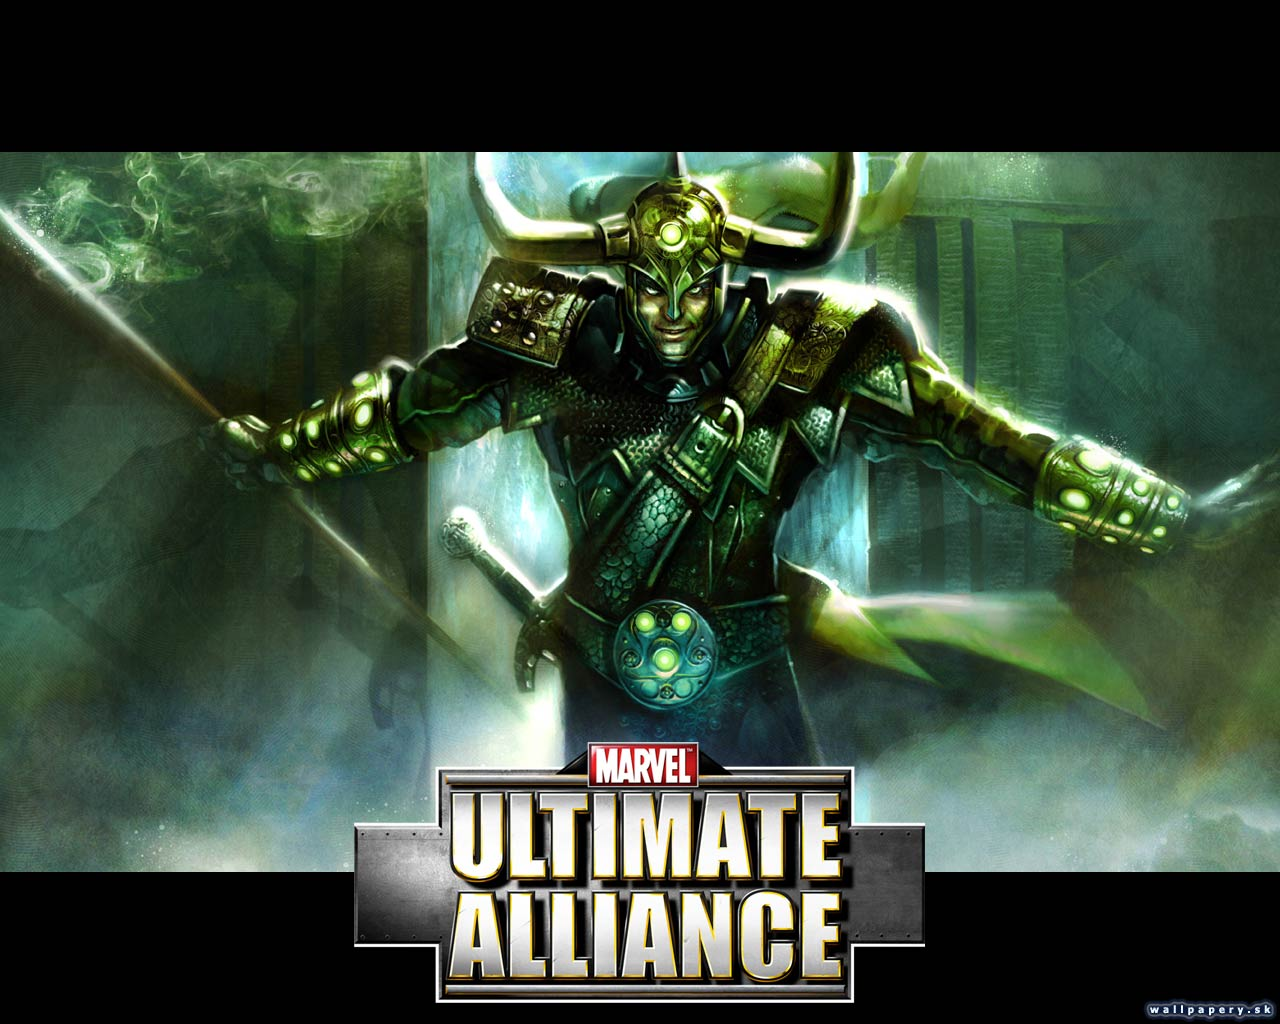 Marvel: Ultimate Alliance - wallpaper 13